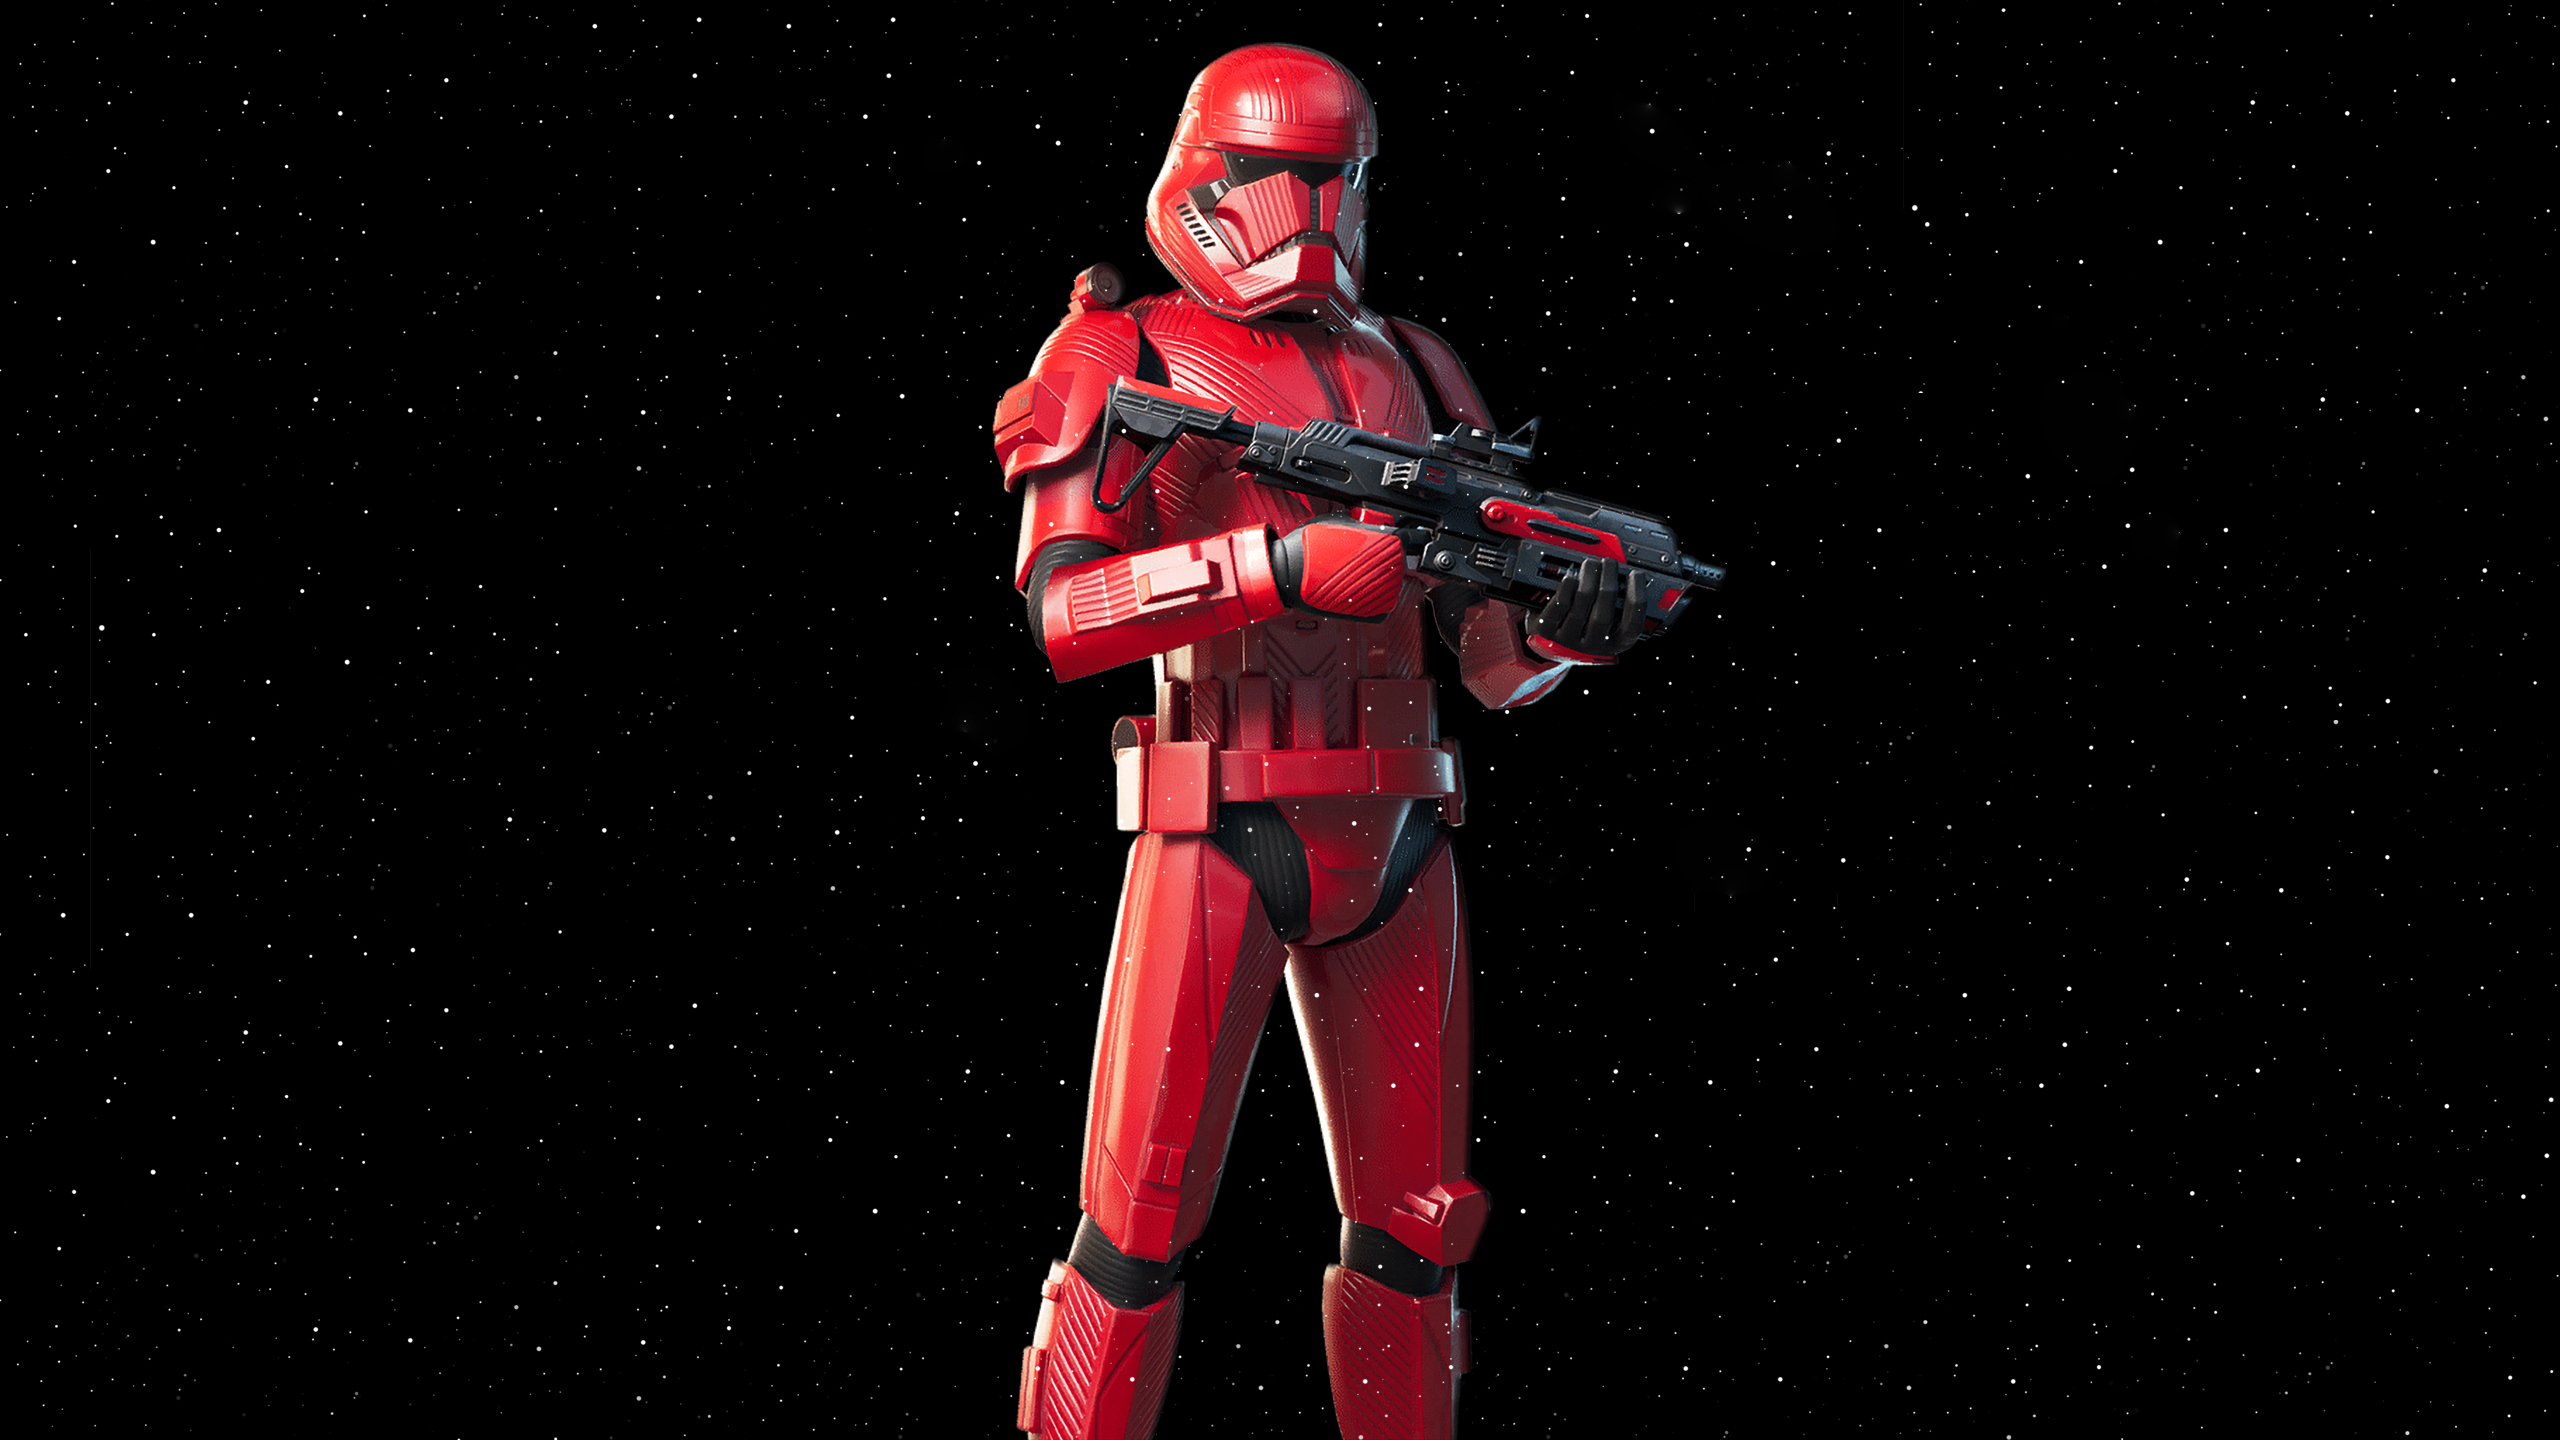 Sith Trooper Fortnite Skin Wallpaper Hd Games 4k Wallpapers Images Photos And Background